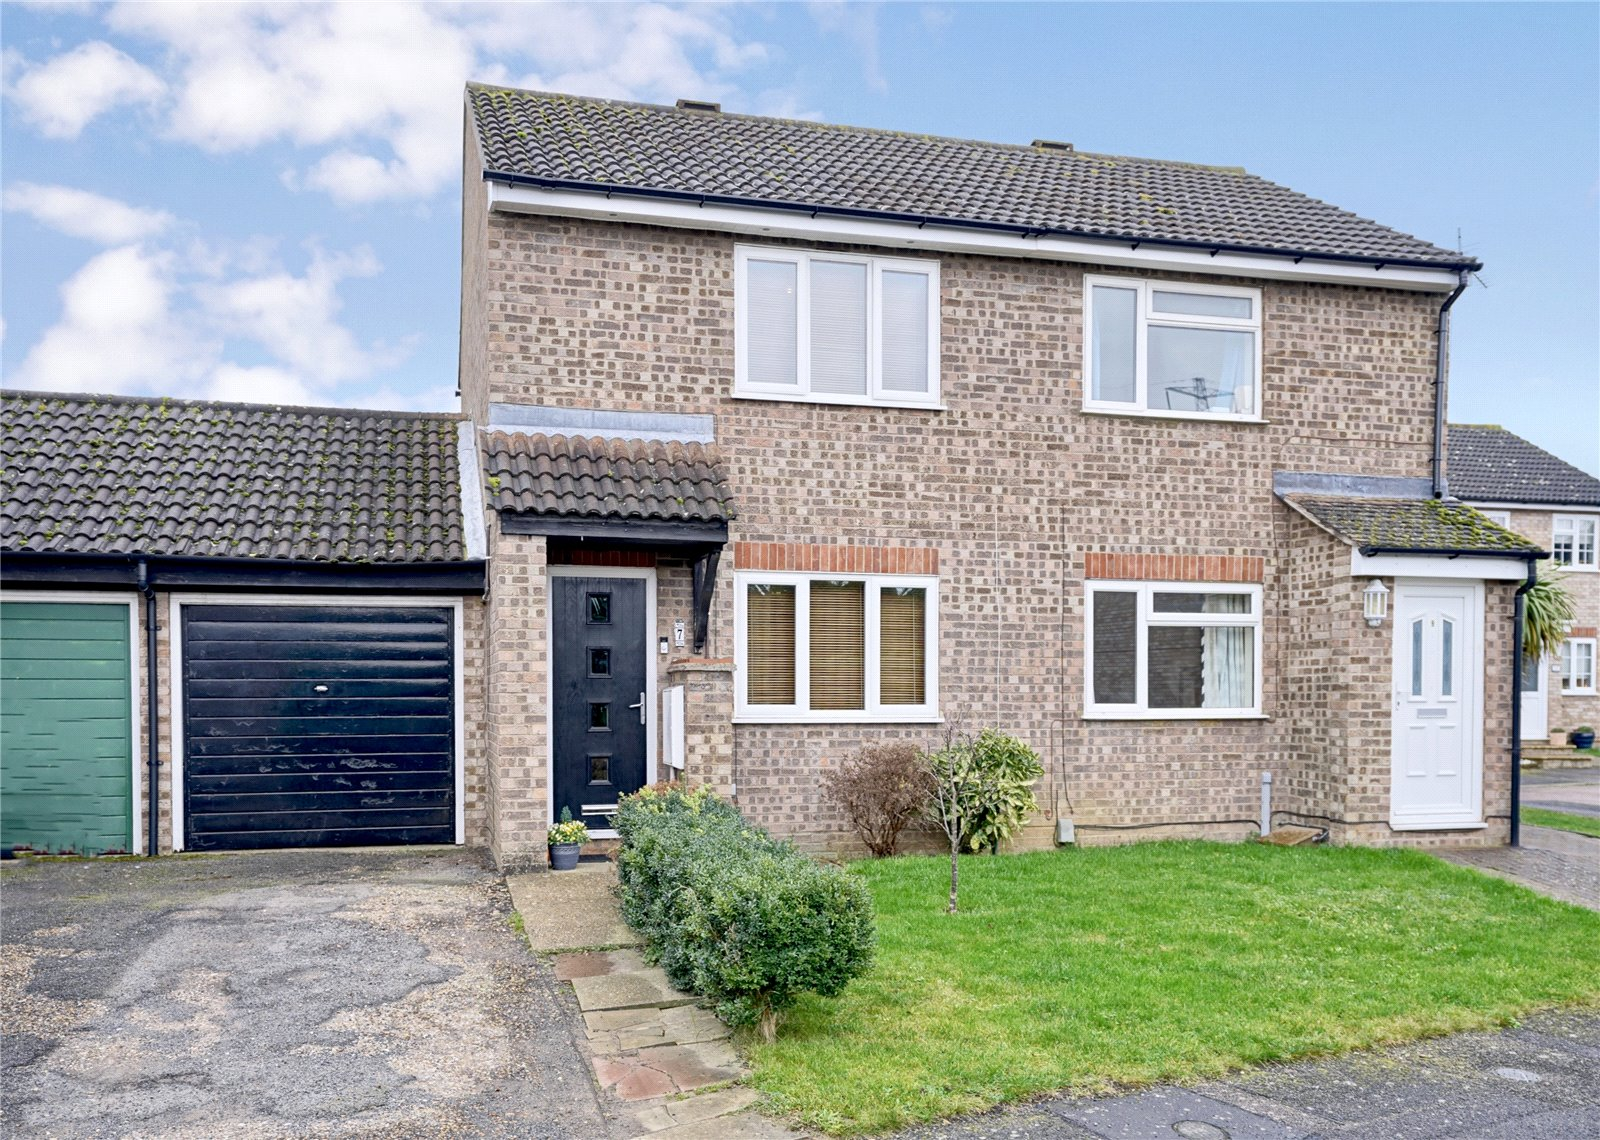 2 bed house for sale in Eaton Socon, Jellicoe Place, PE19 8NL, PE19